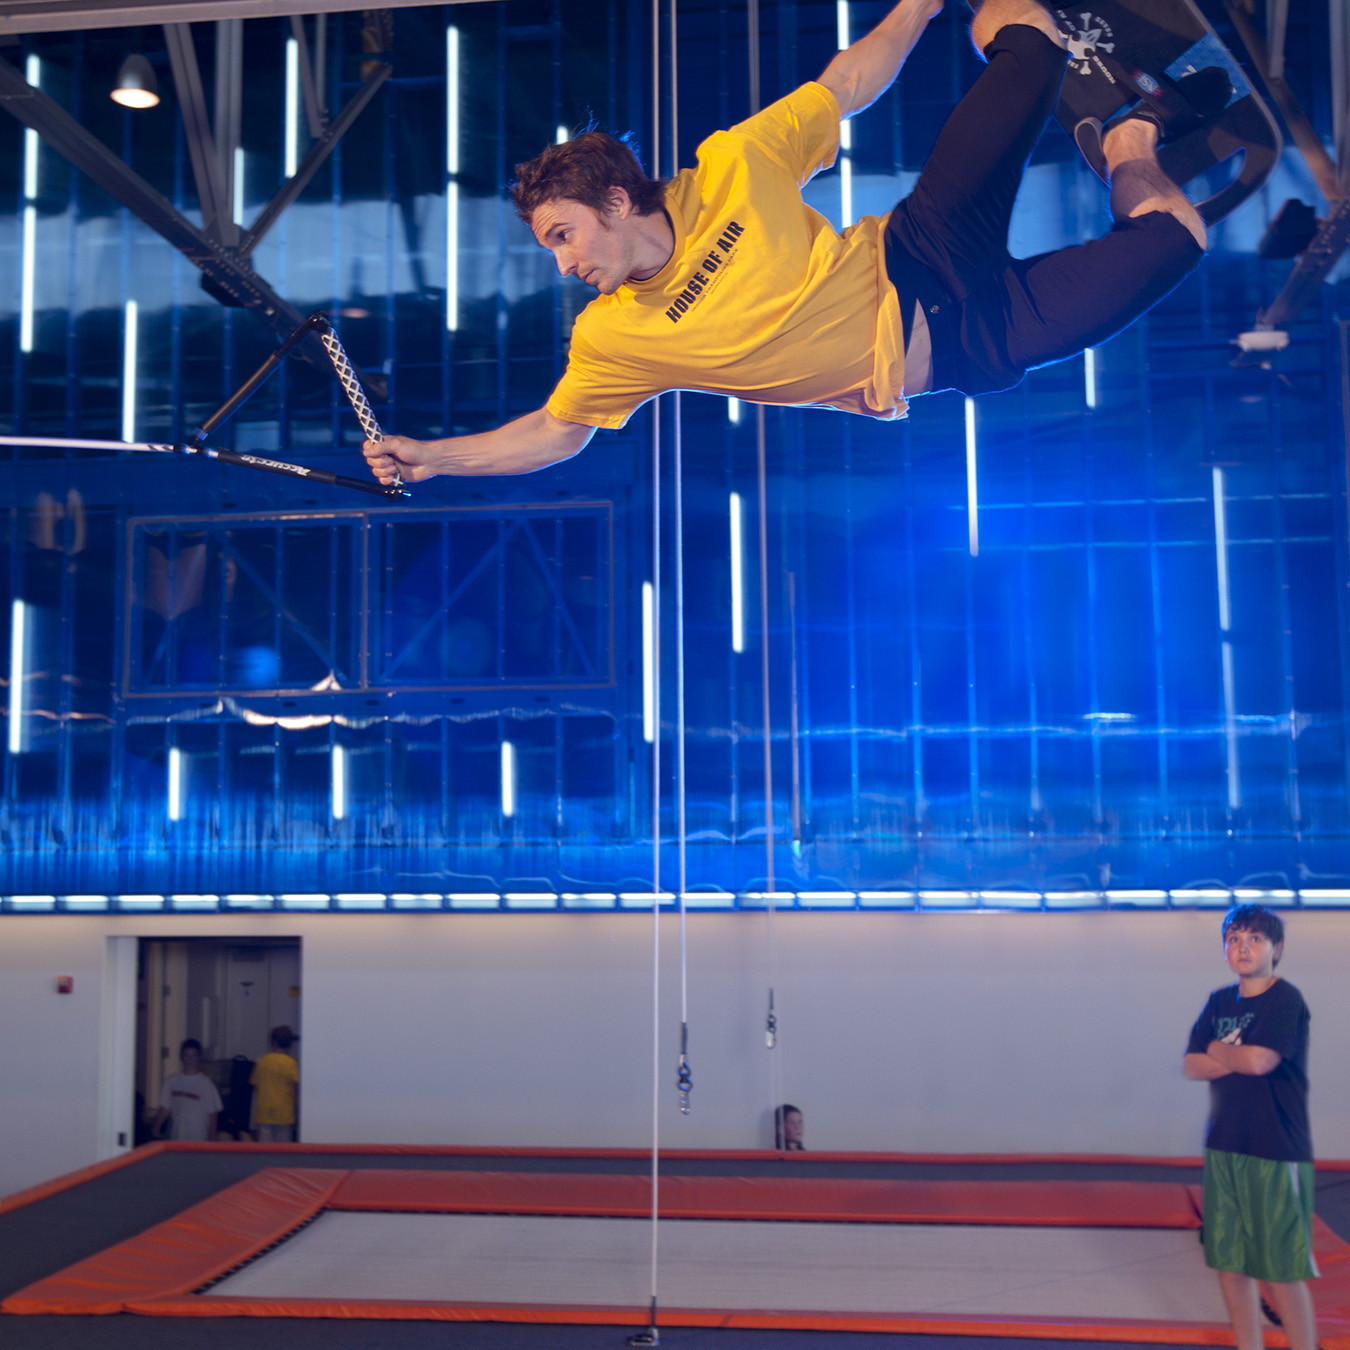 Presidio House of Air interior: athlete does freestlye aerial maneuver